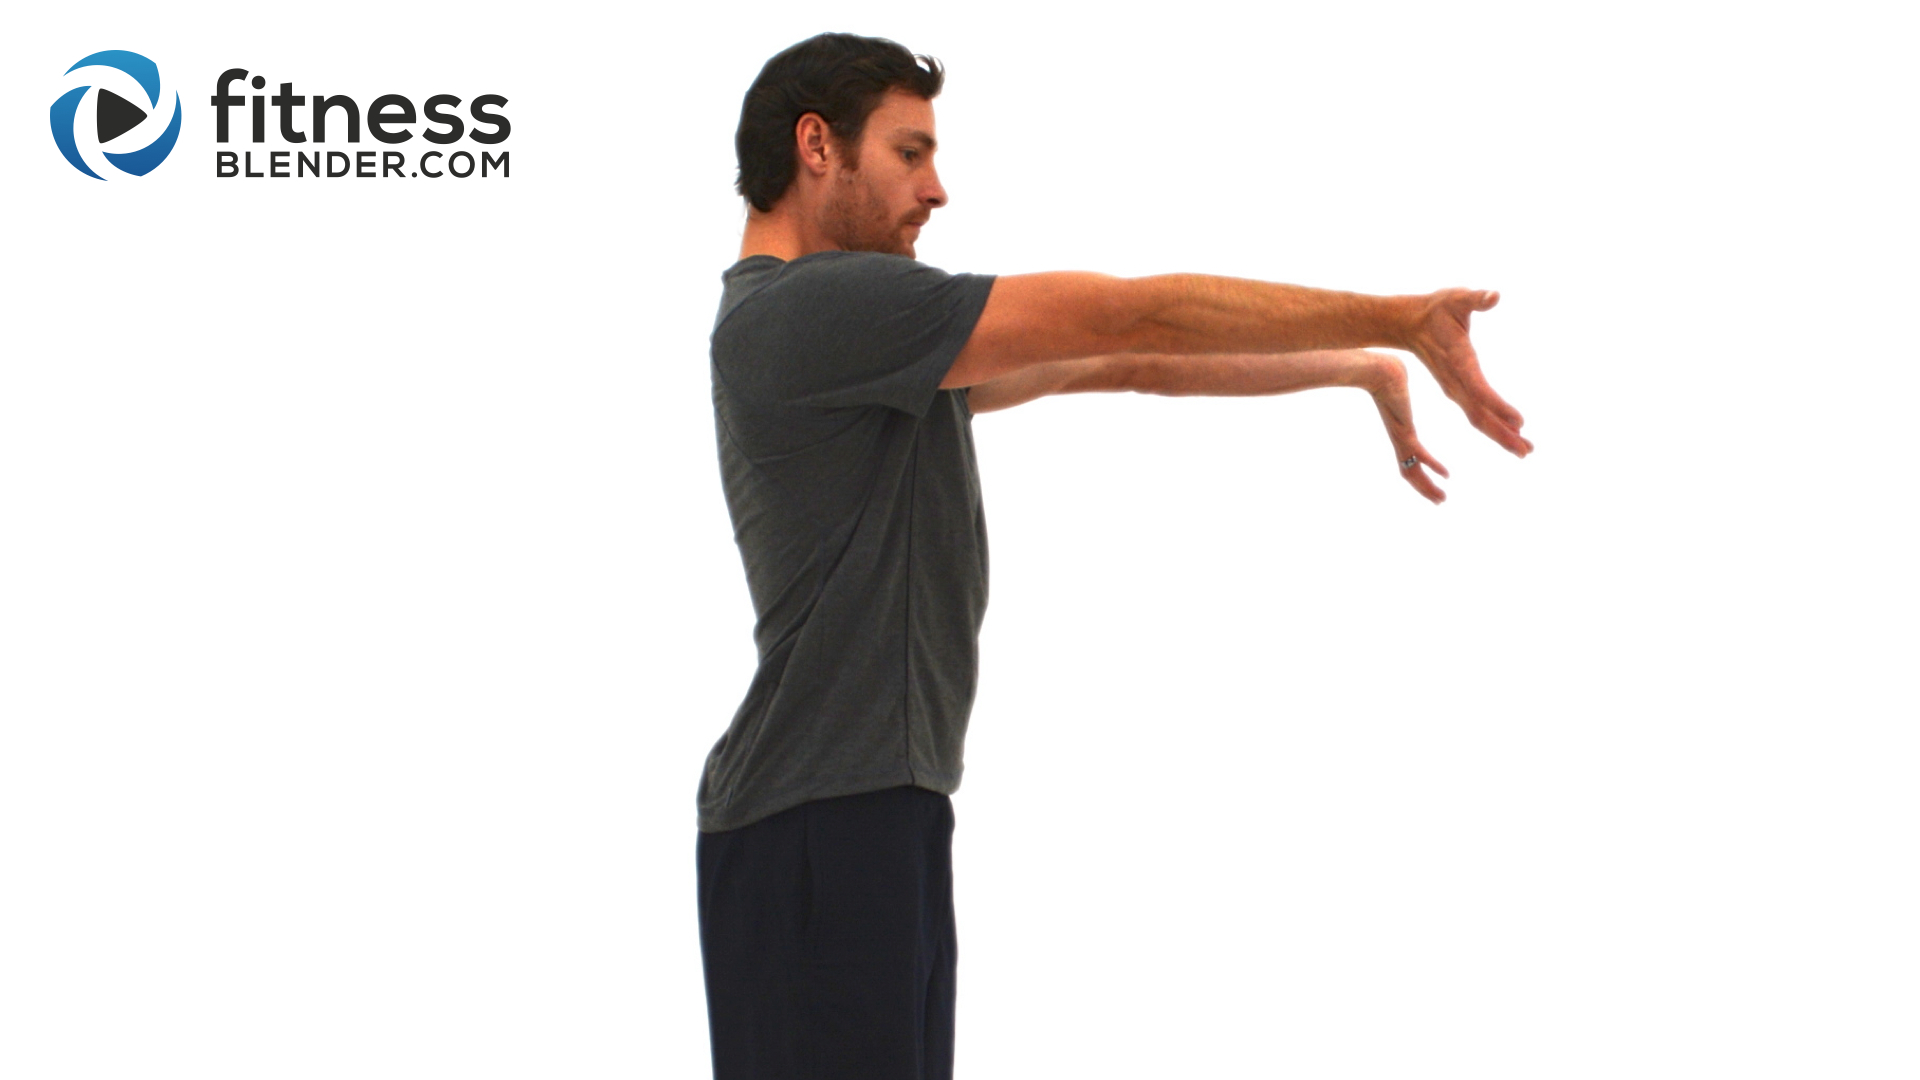 Flexibility exercise and stretching passive stretching